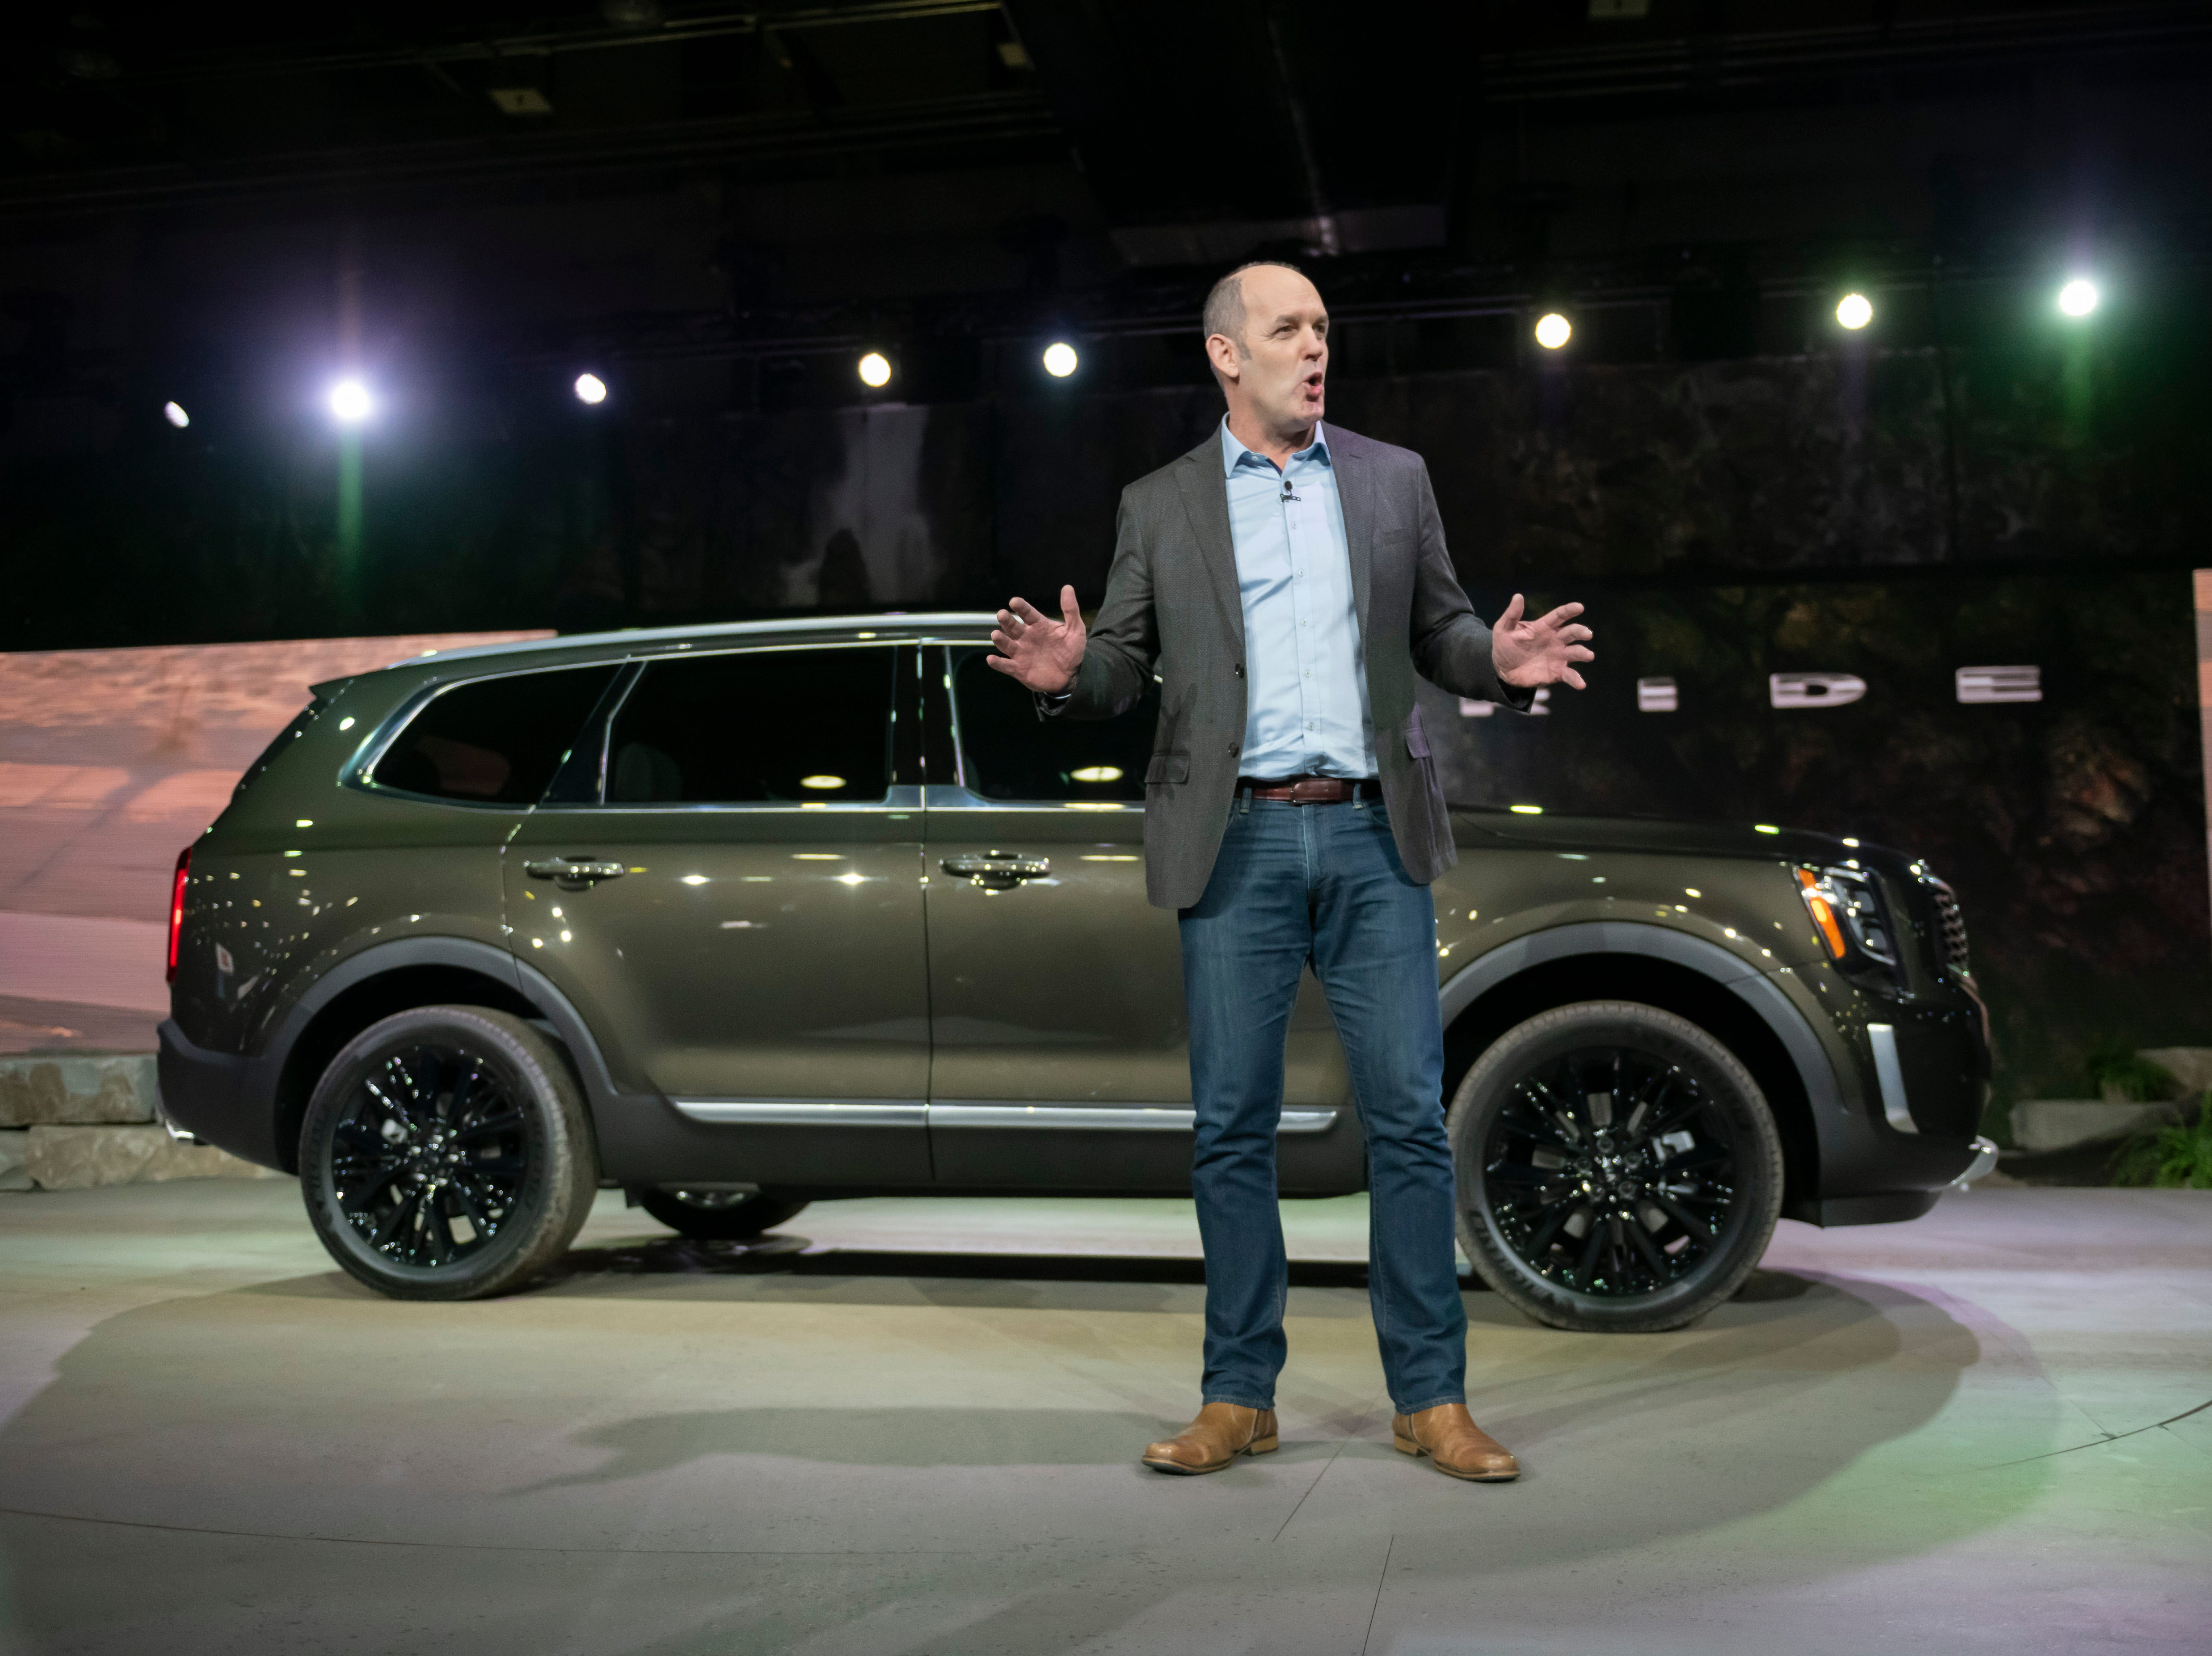 Michael Cole, chief operating officer and executive vice president at Kia Motors America, talks about the 2020 Kia Telluride during its reveal.